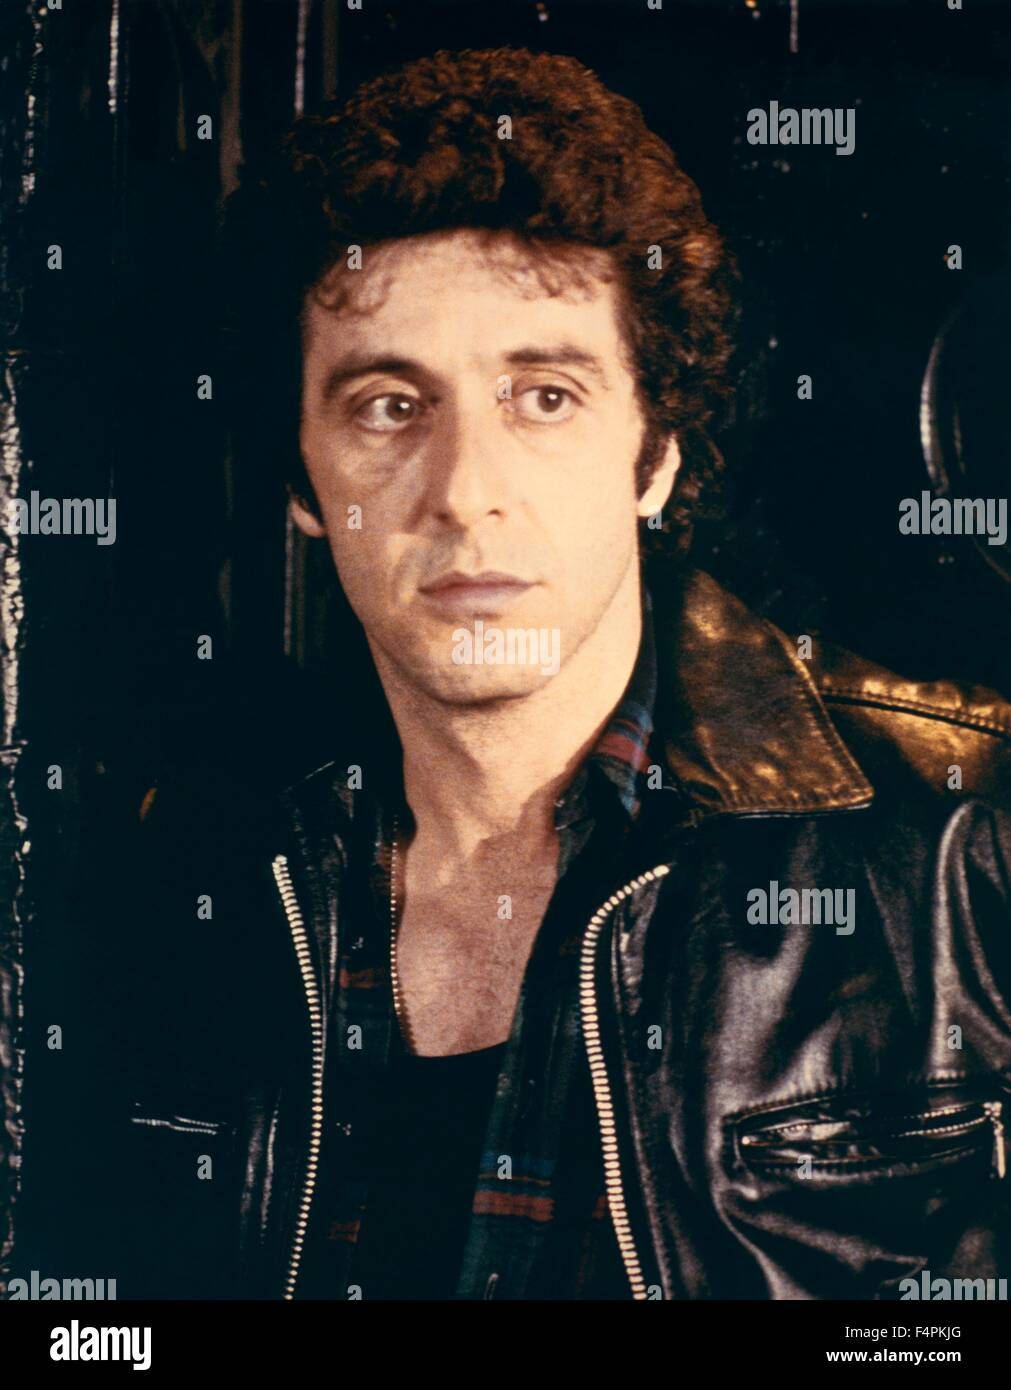 Al Pacino / Cruising / 1980 directed by William Friedkin  [United Artists] - Stock Image